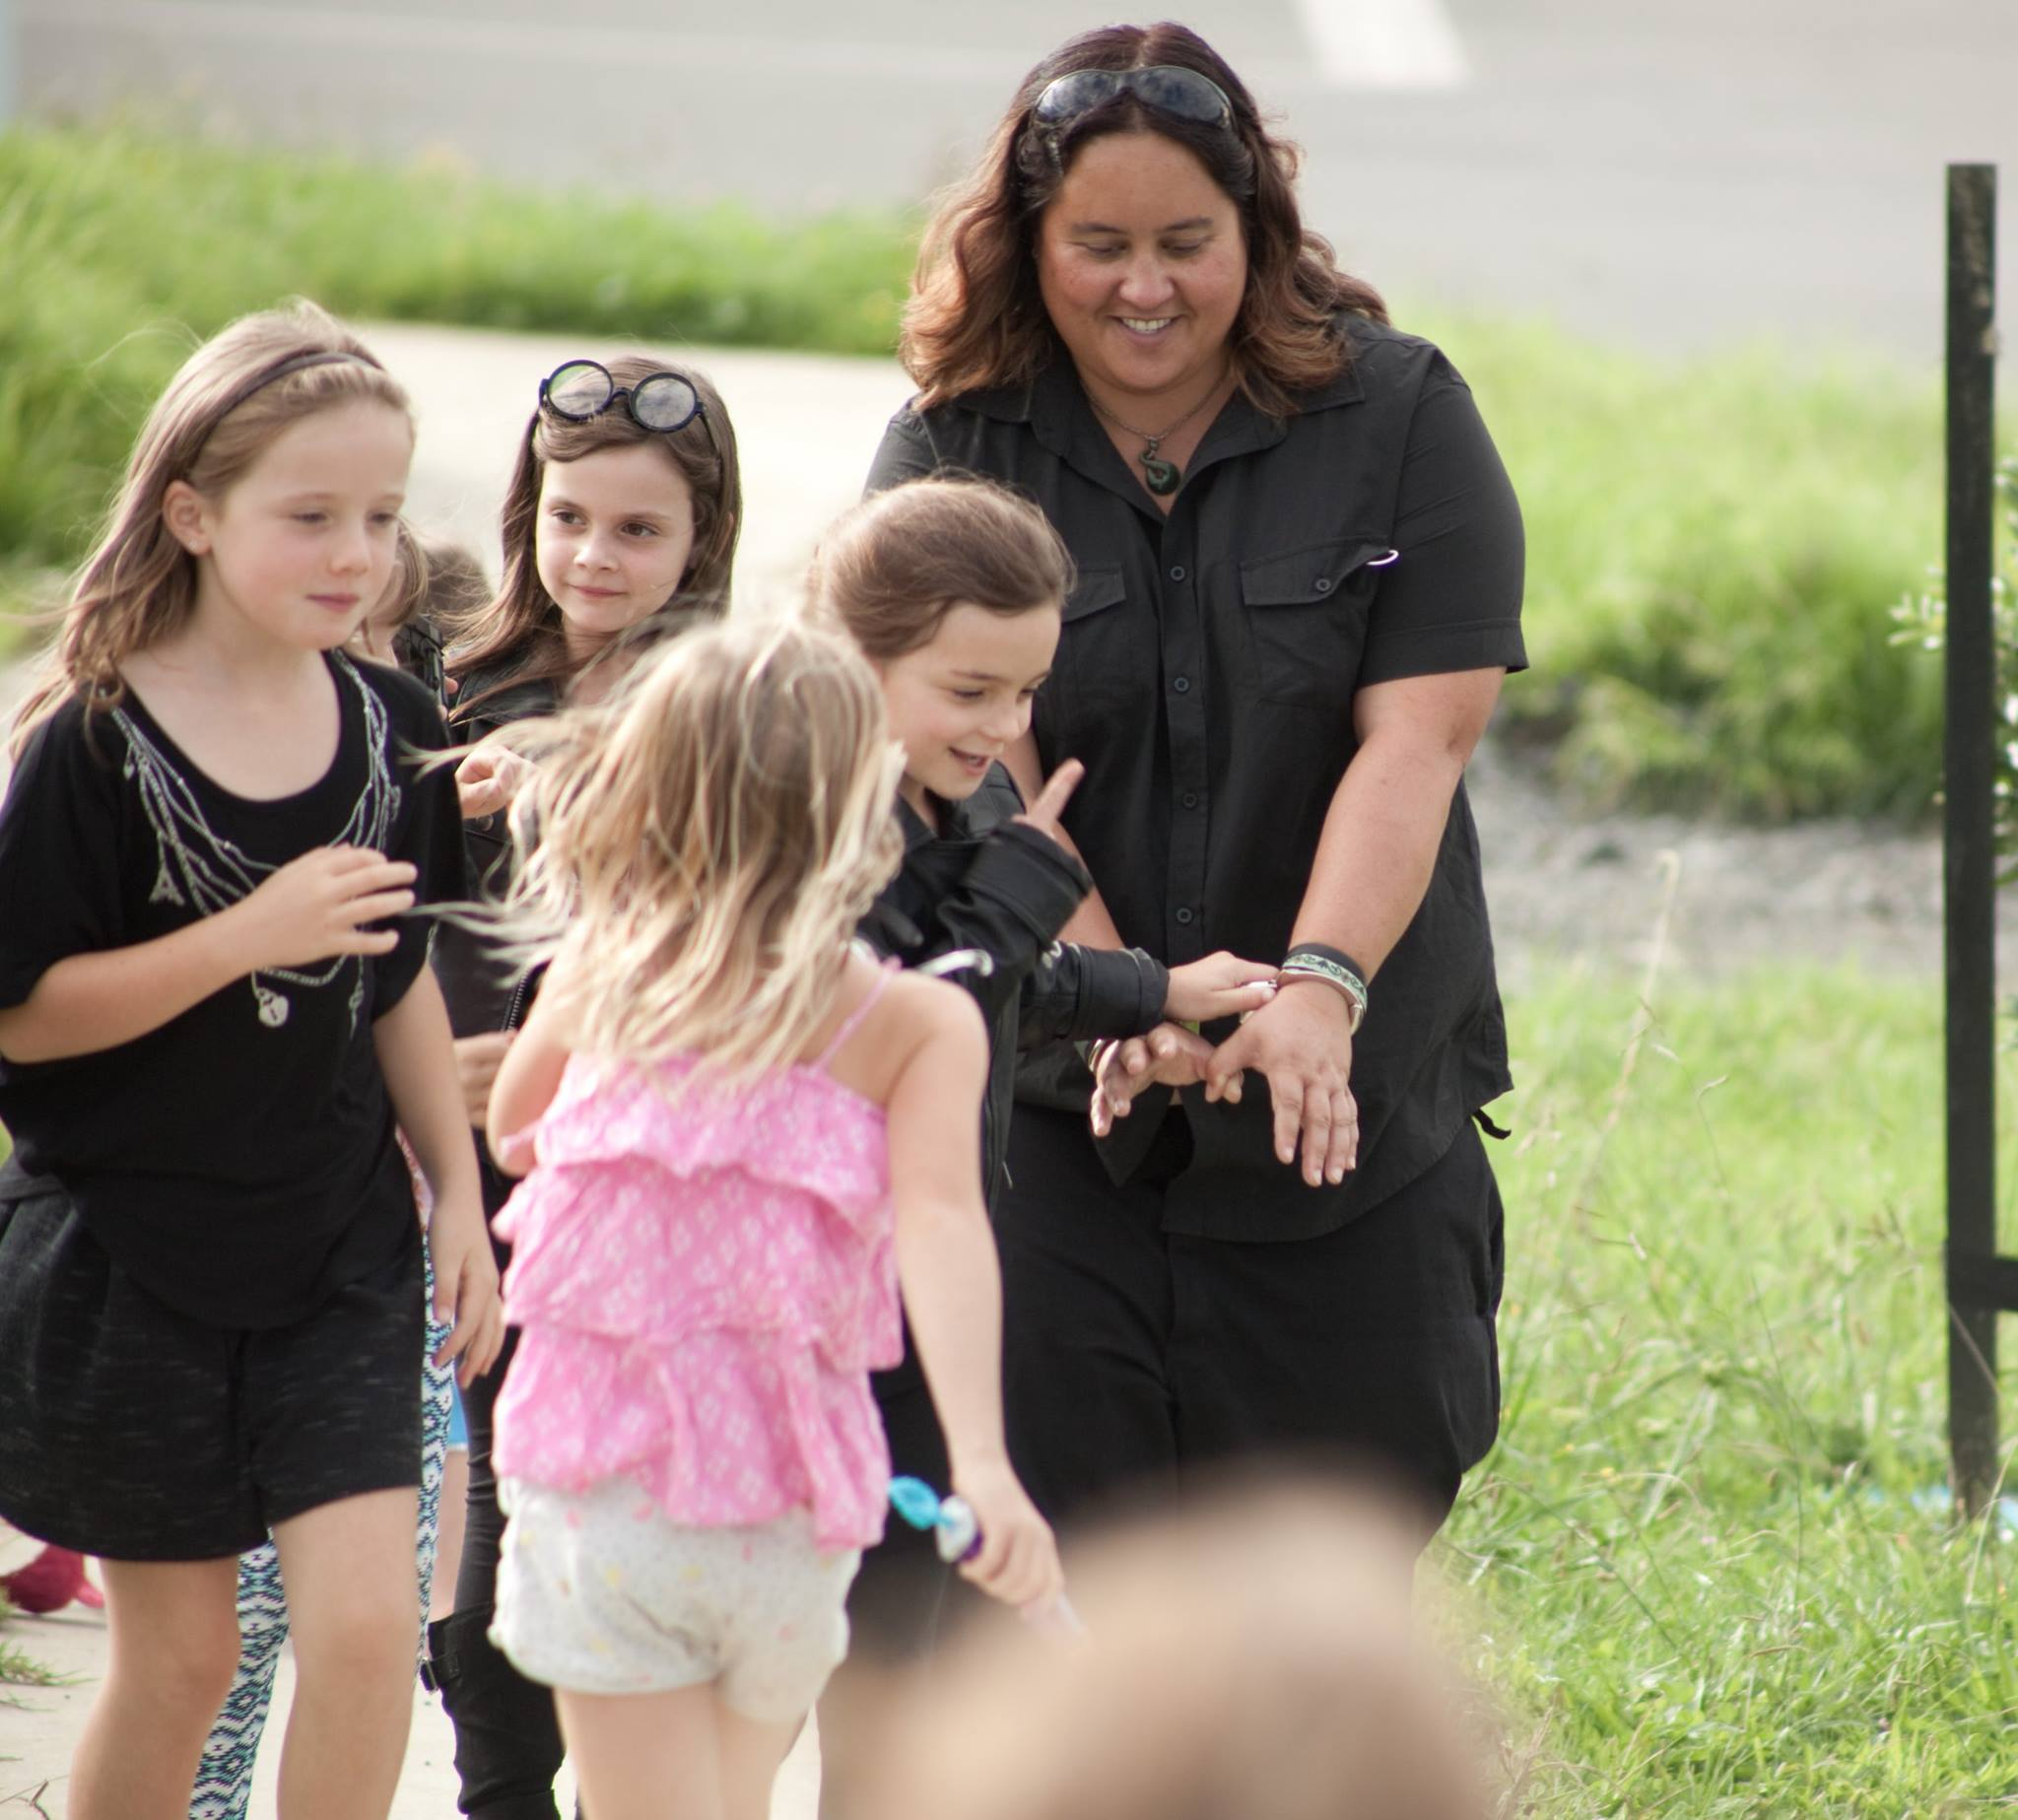 Debbie - Kindest friend- Pictured being arrested by a swarm of kids. The person you know will be there at your side. Scanning magician. Nothing ever seems to be too much to ask.